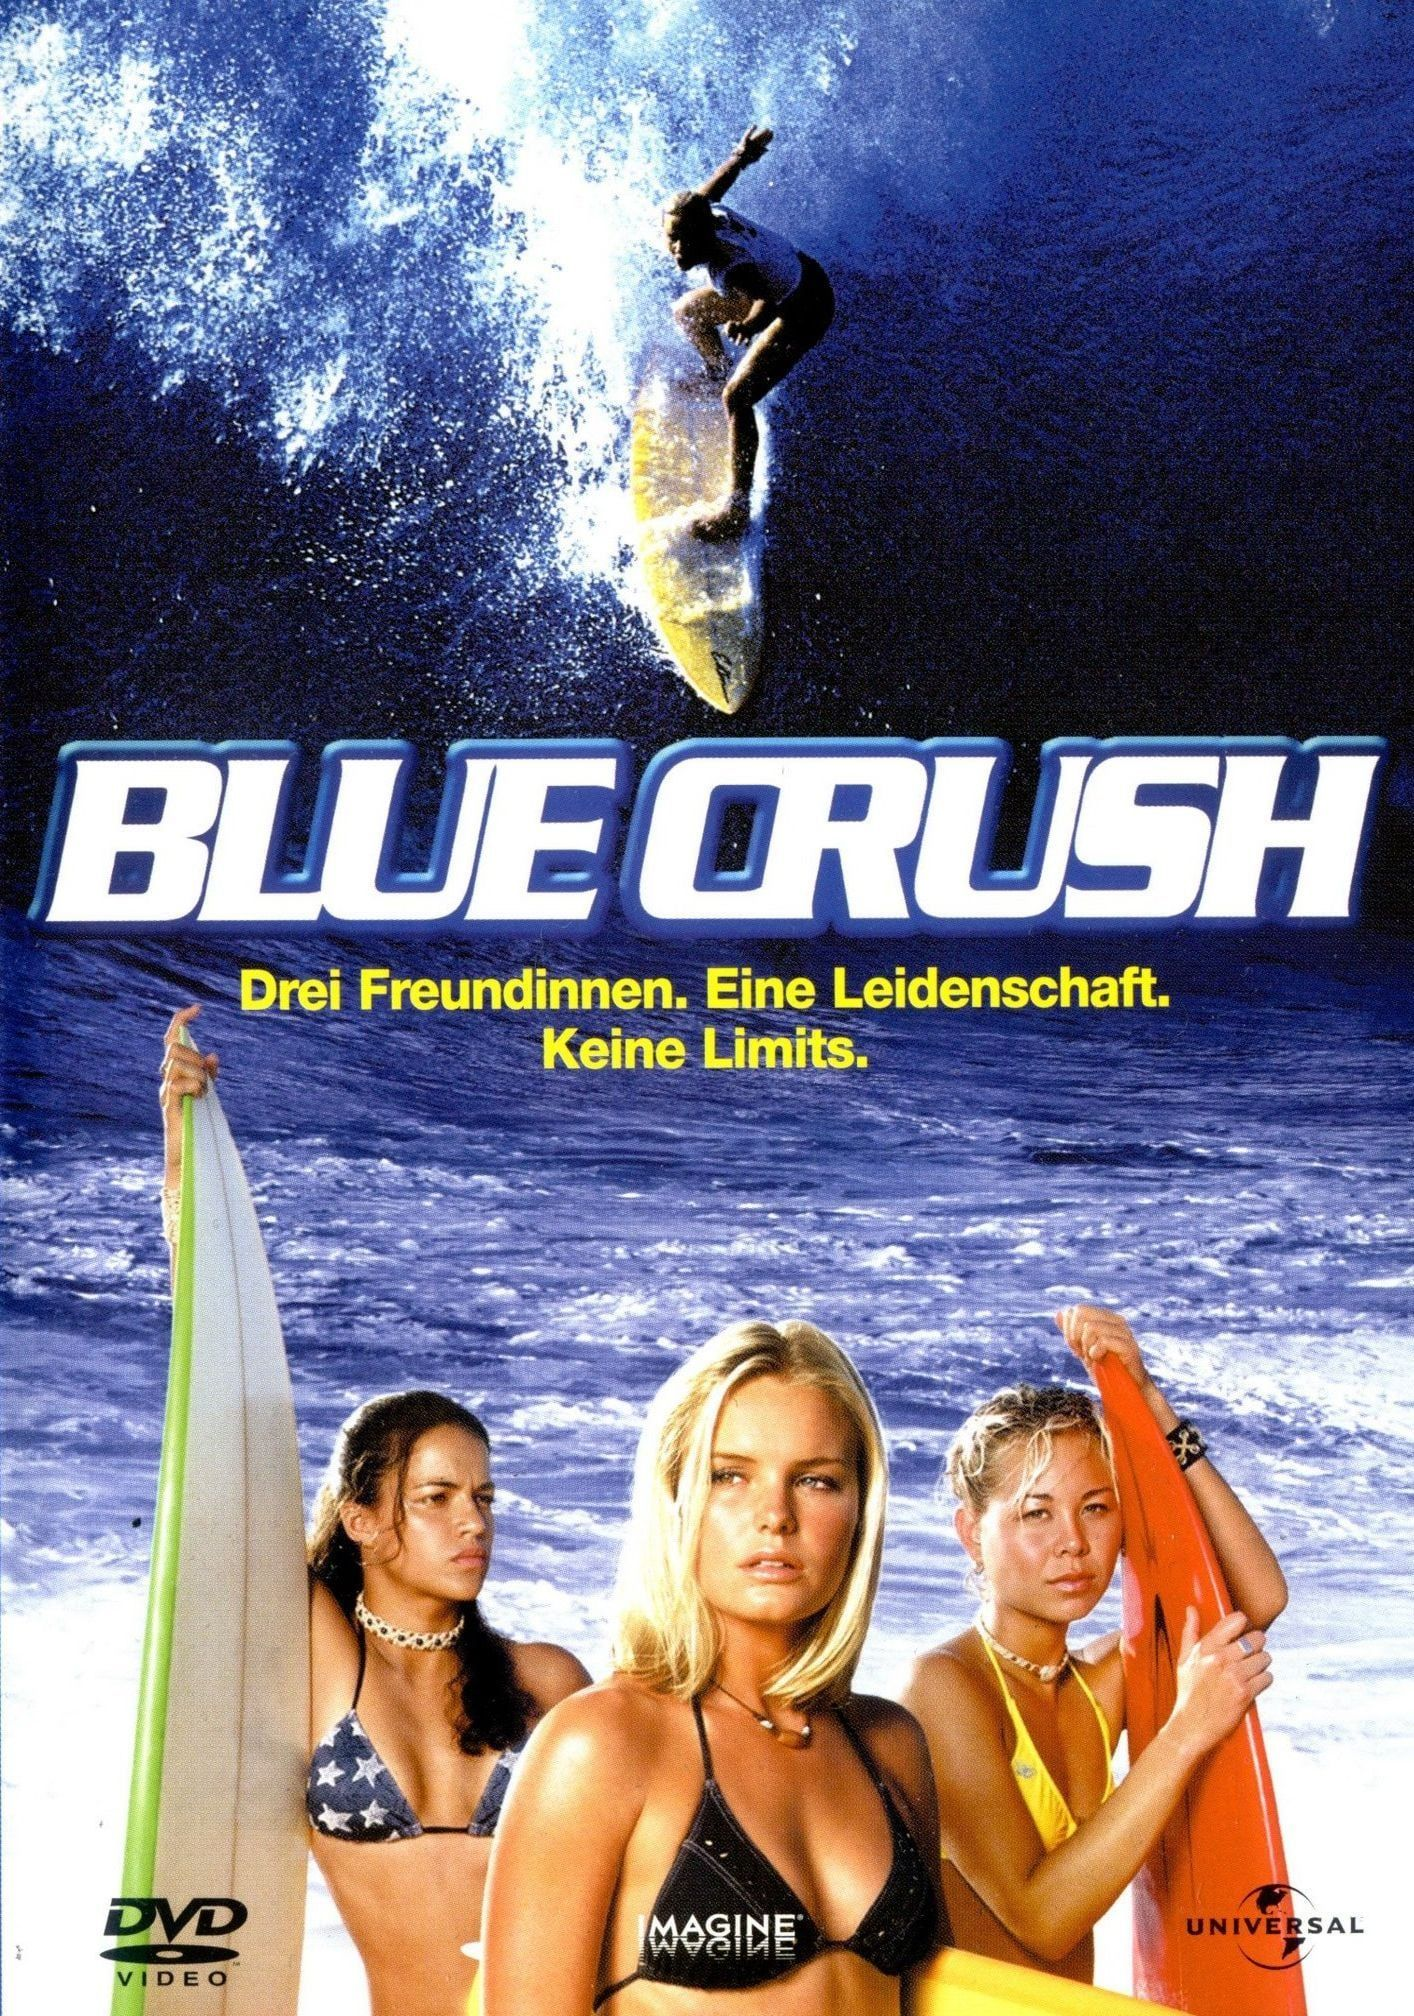 Blue Crush 2002 Complet Telechargements For Free With Images